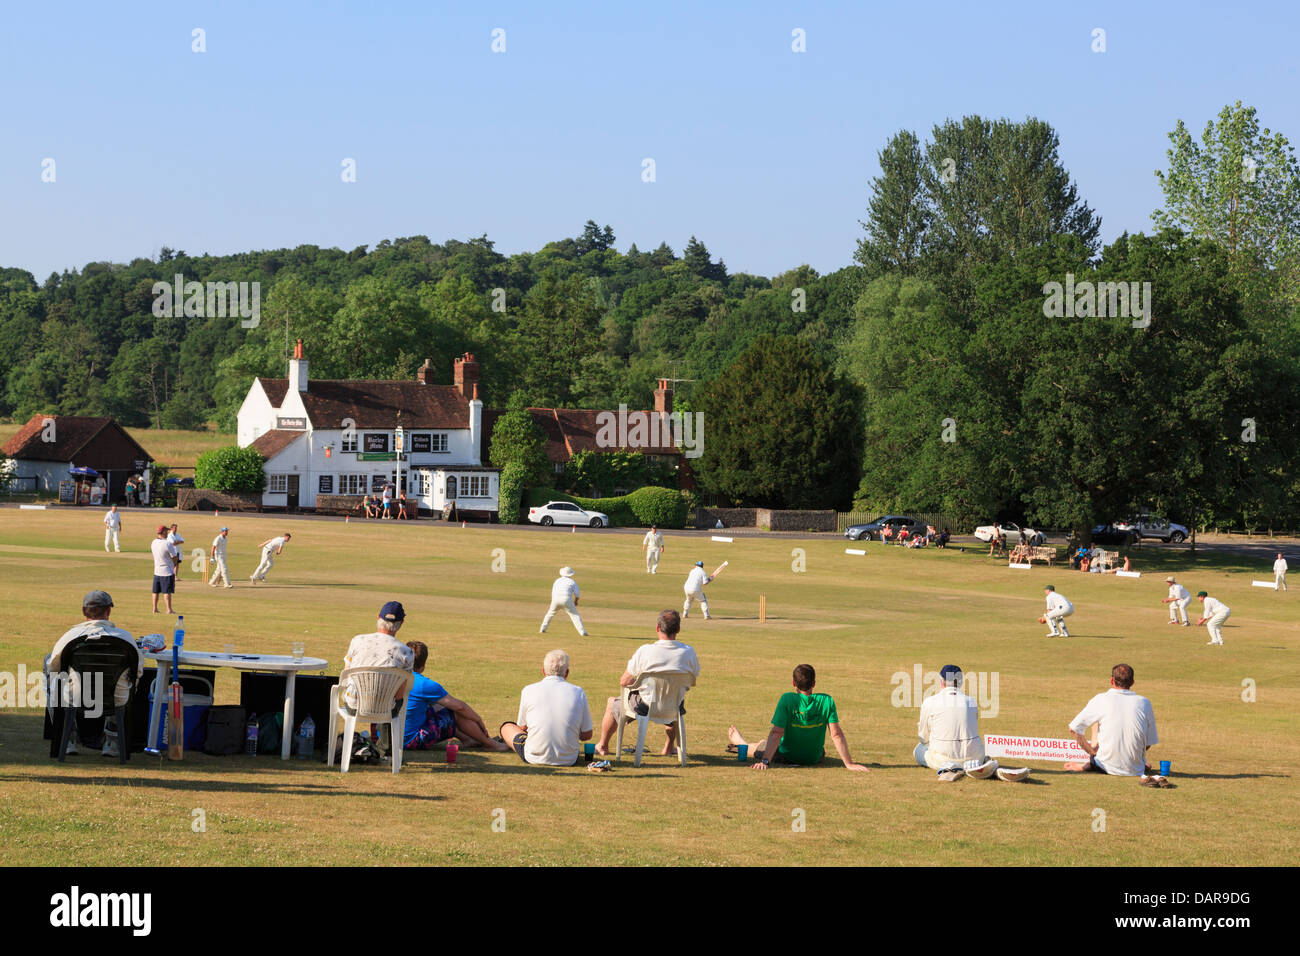 Local team playing a cricket match on village green in front of Barley Mow pub on a summer's evening. Tilford Surrey Stock Photo